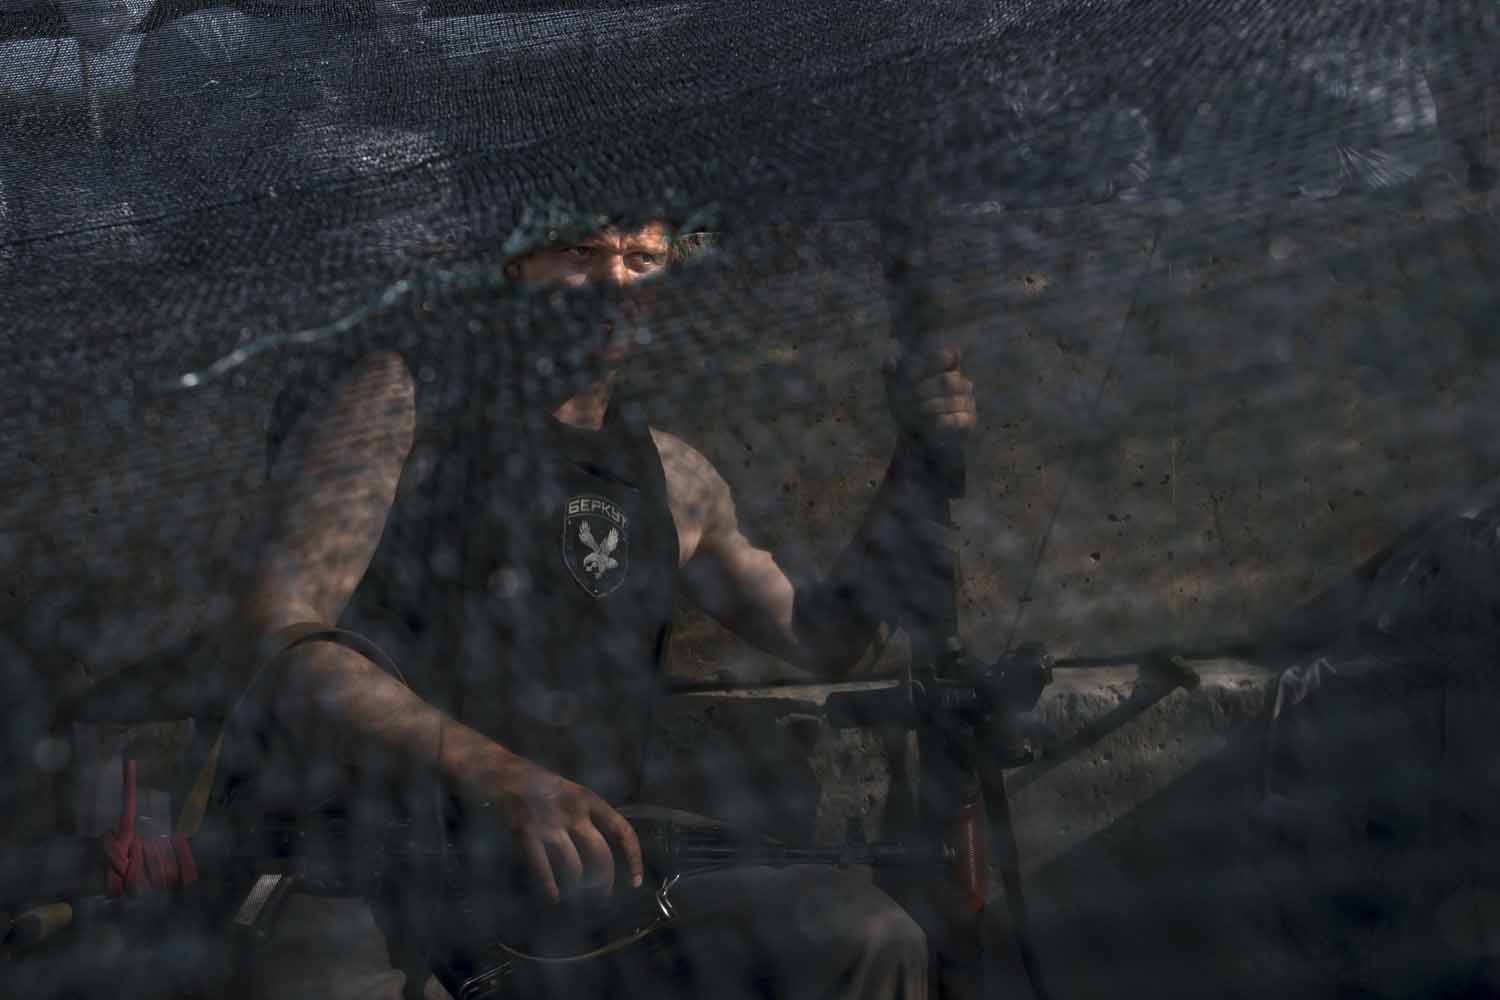 May 26, 2014. A pro-Russian armed militant wearing a shirt bearing an emblem of a former Ukrainian special force police unit sits behind a camouflage net as he guards a checkpoint blocking the major highway which links the Russian city of Rostov-on-Don, and Kharkiv, outside Slovyansk, Ukraine.